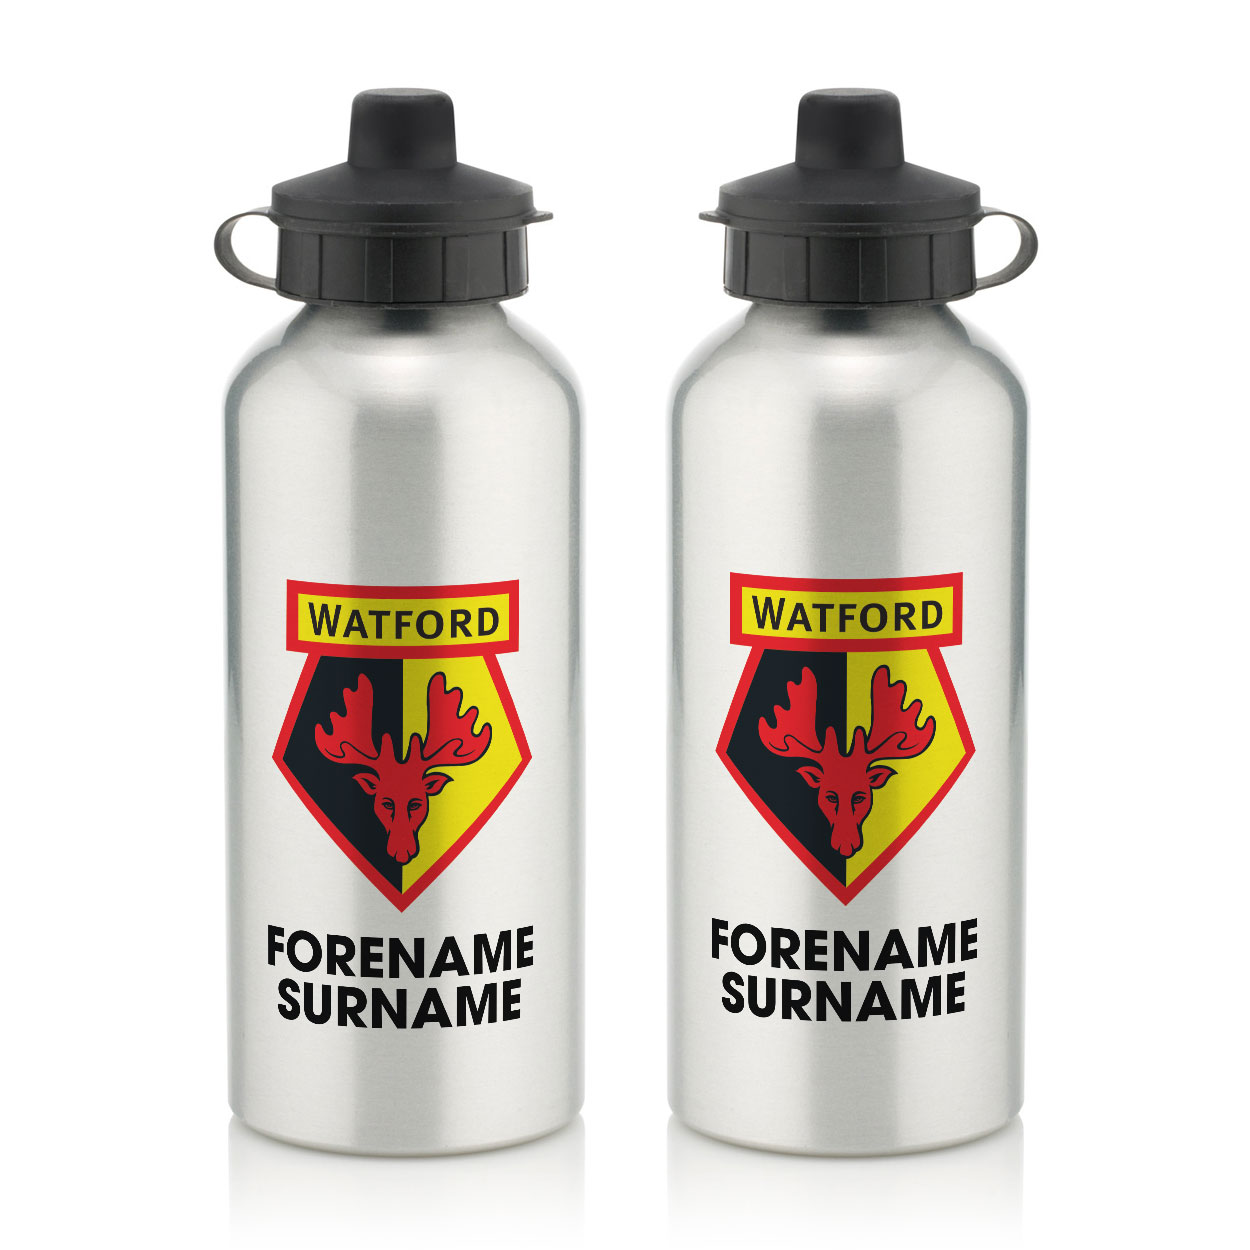 Watford FC Bold Crest Water Bottle